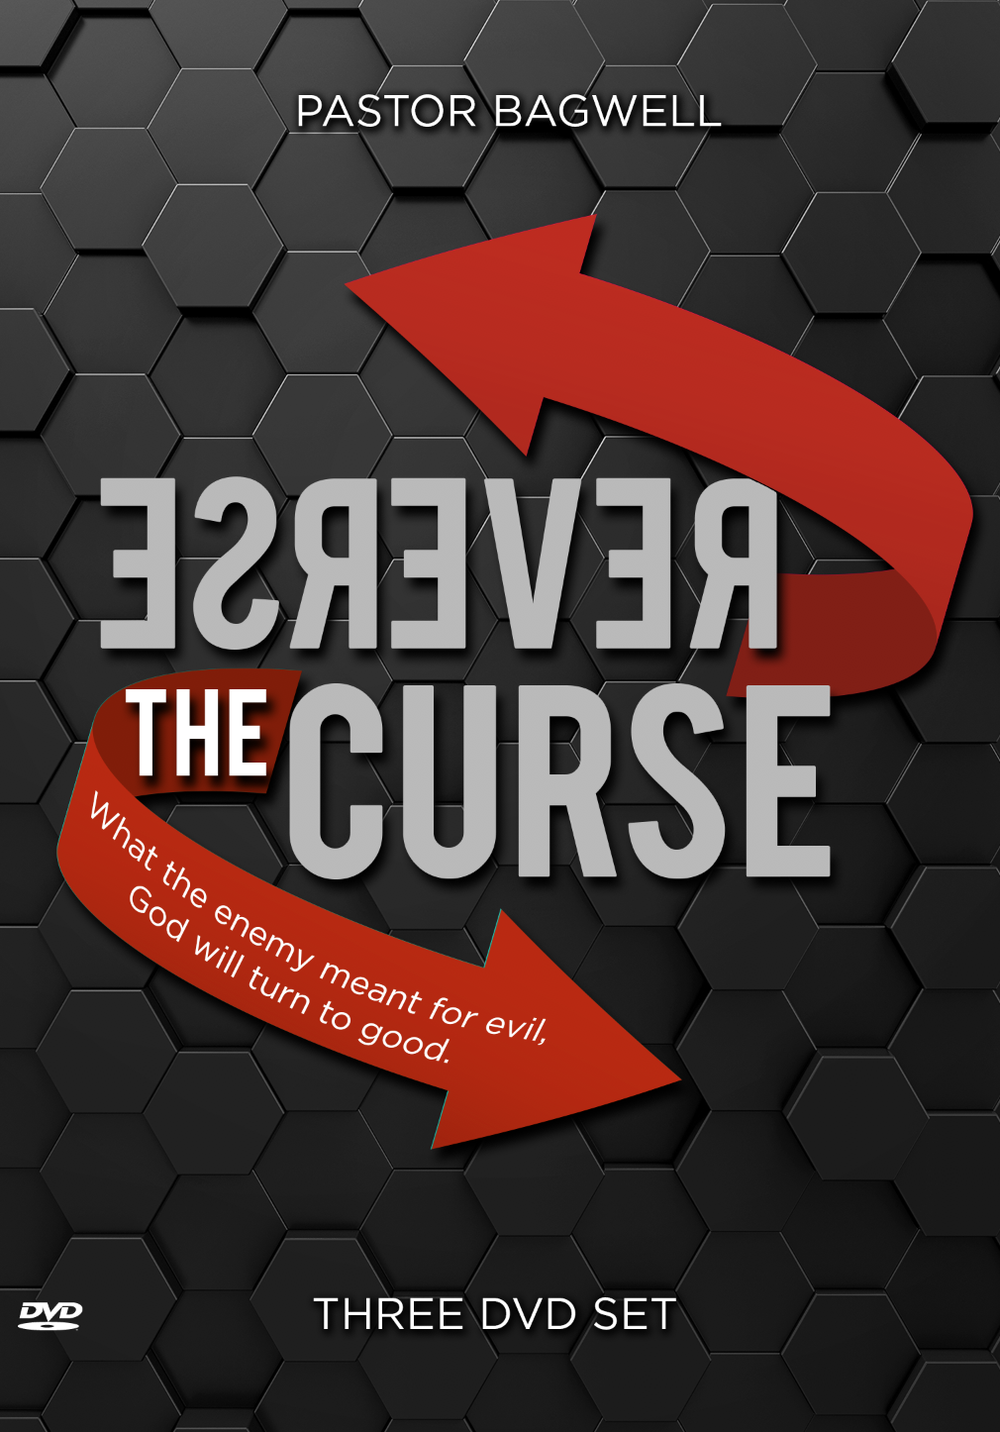 Image of Reverse The Curse - 3 DVD Set